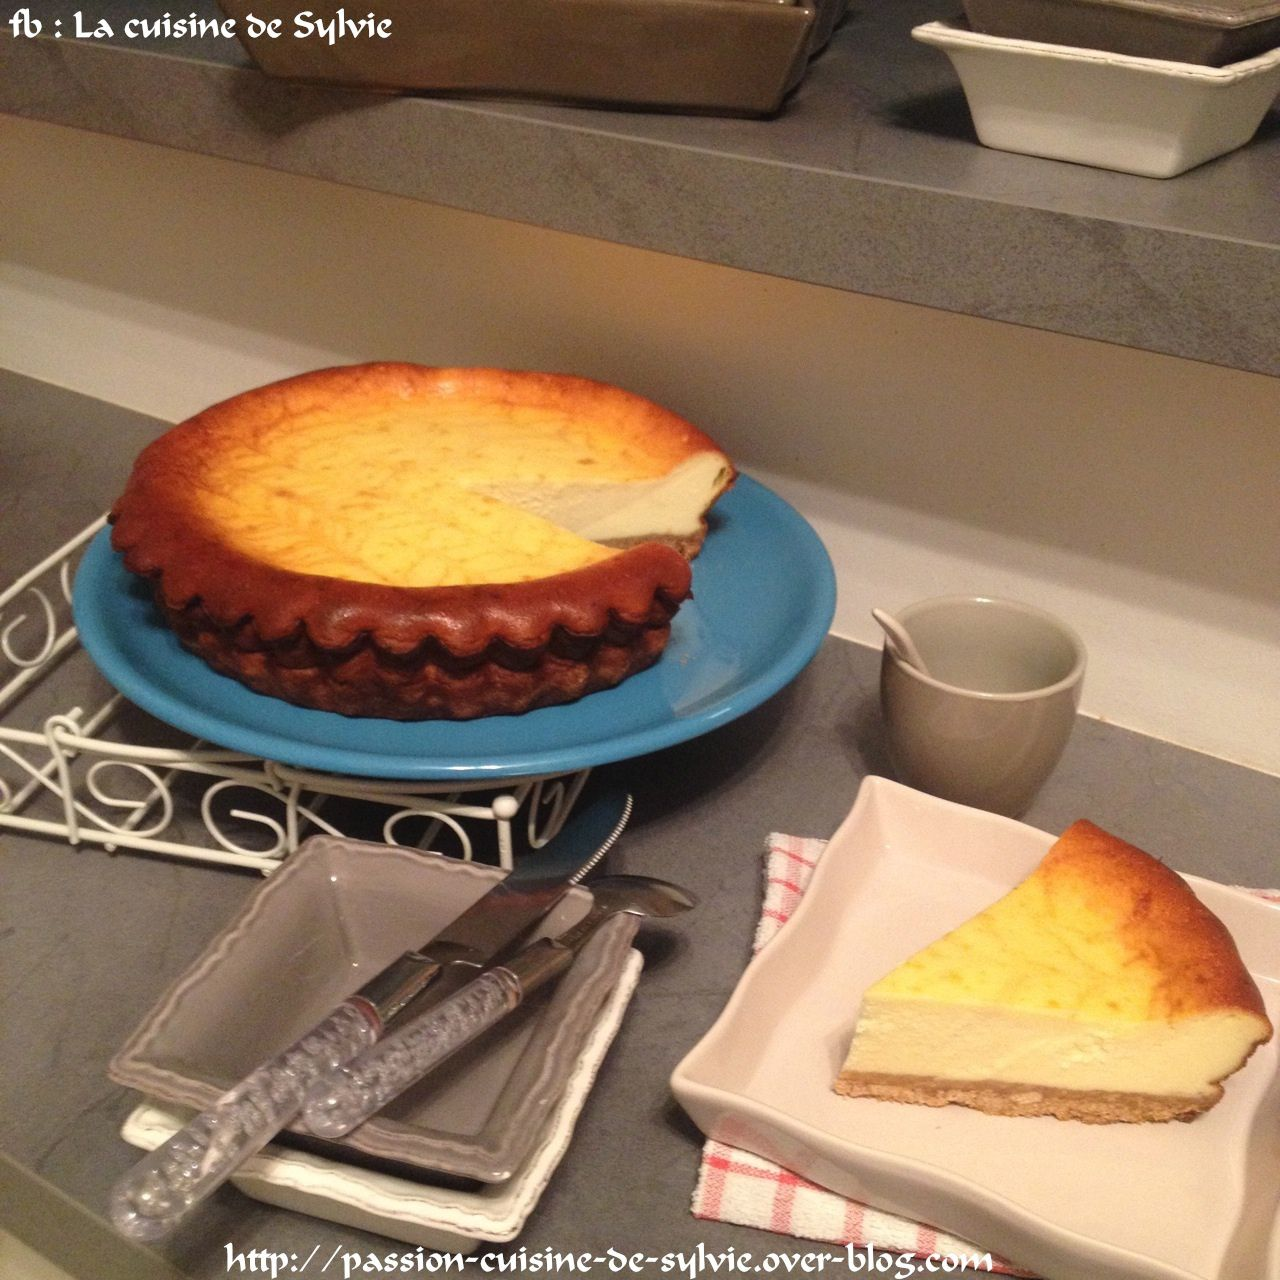 Cheesecake petits beurres / petits suisses